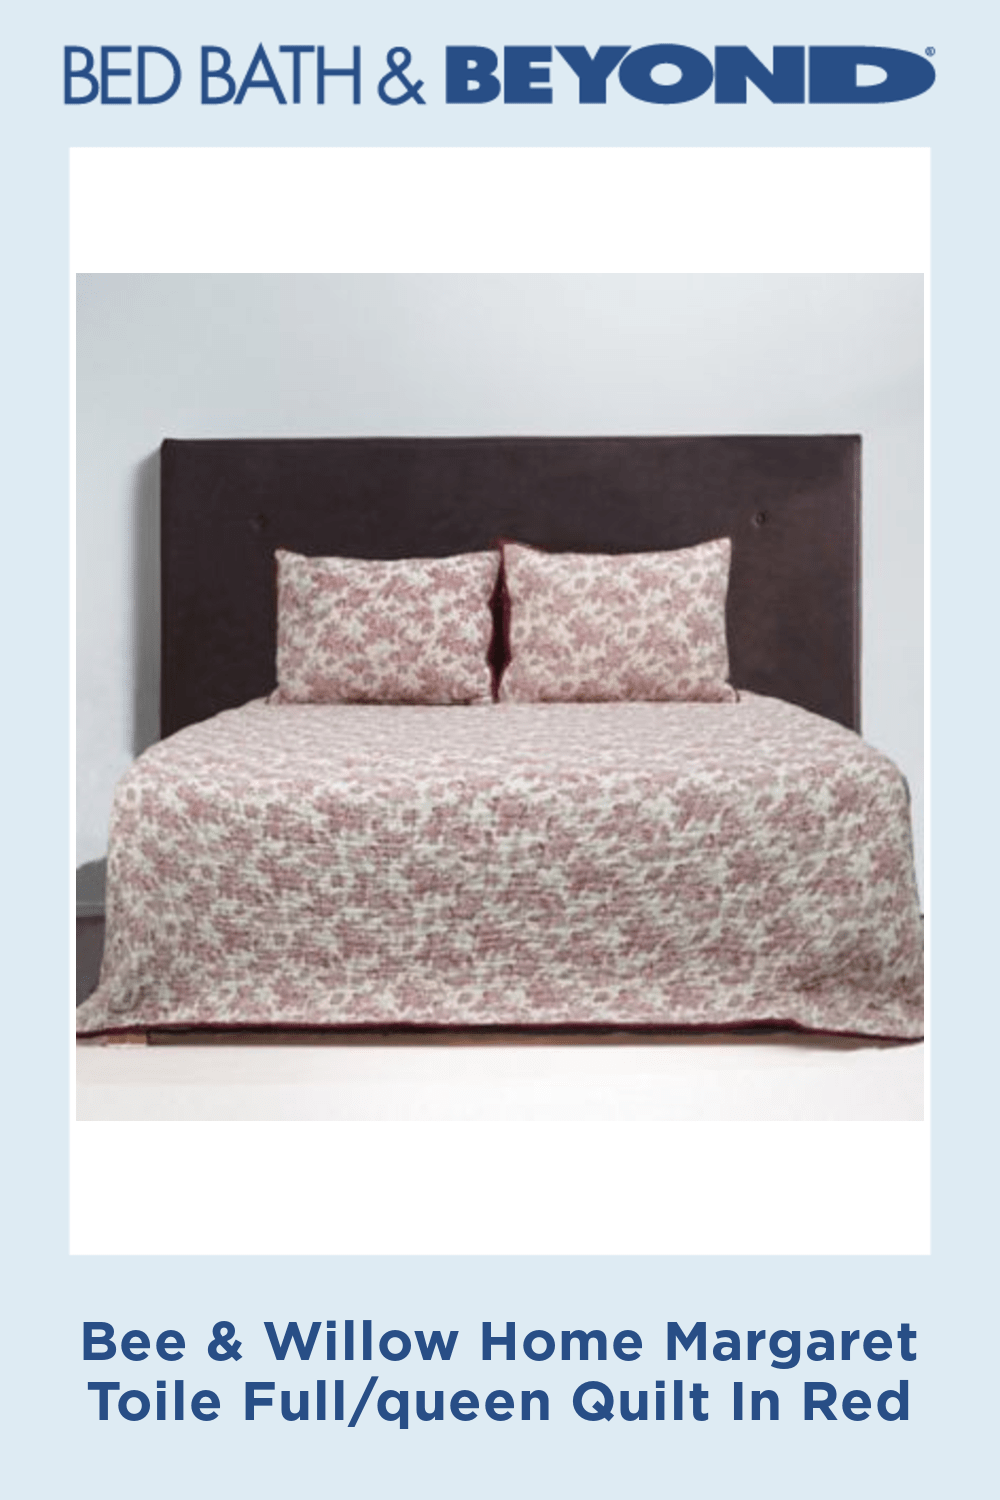 Bee Willow Home Margaret Toile Quilt Bed Bath Beyond King Quilt Queen Quilt Quilt Bedding